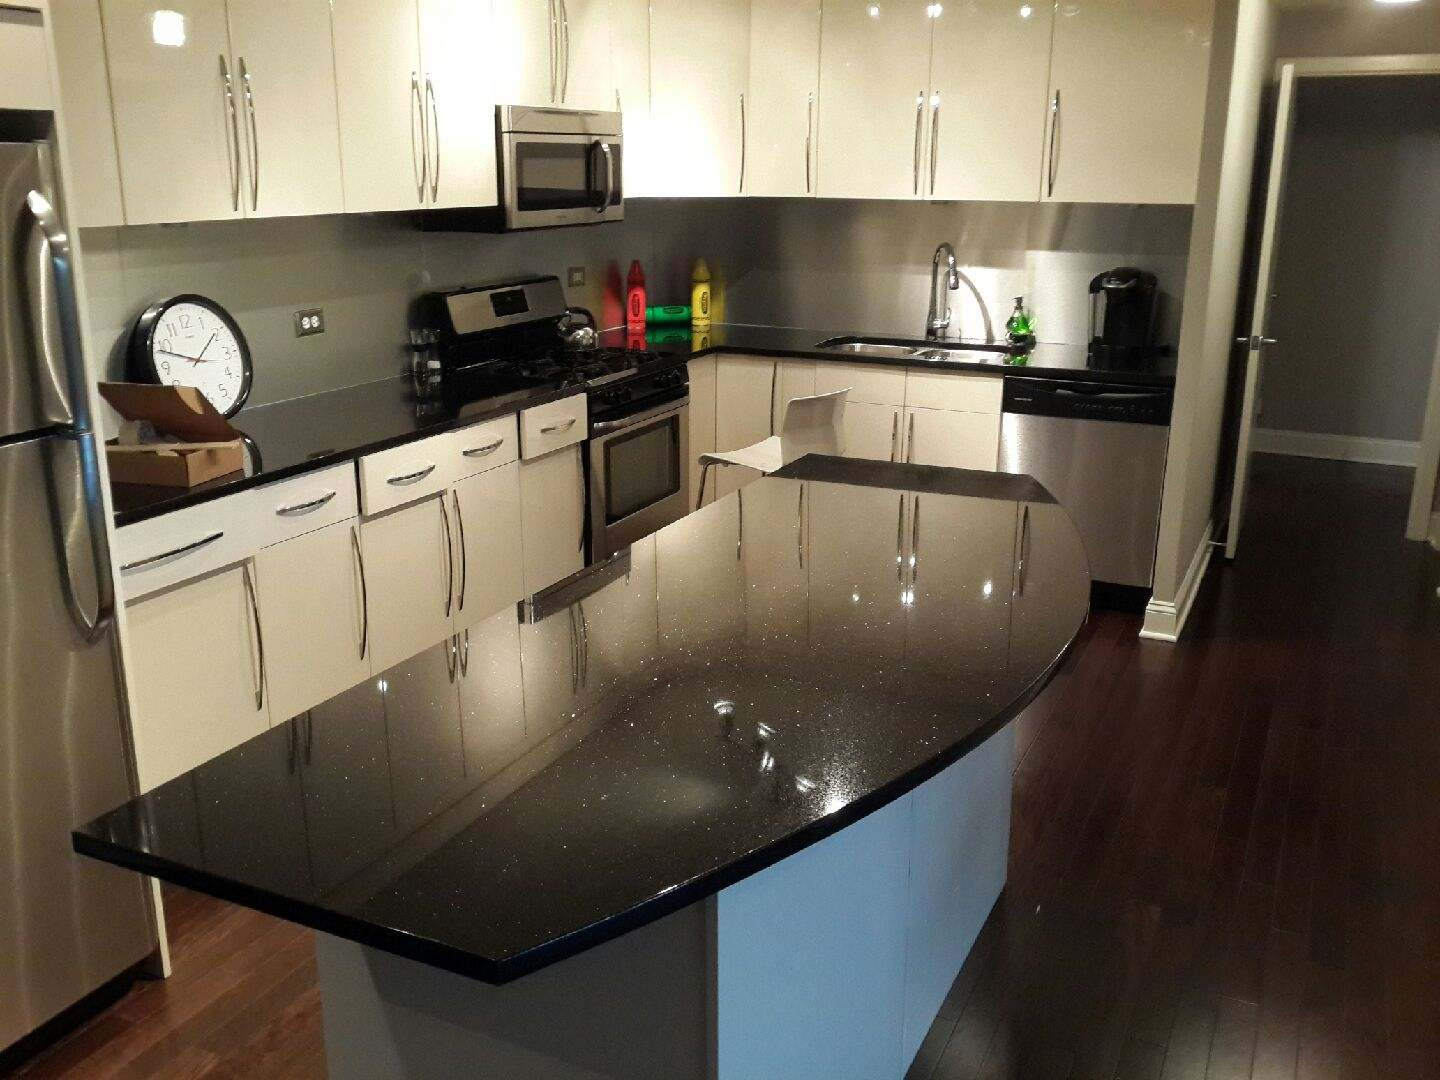 Kitchen Countertops Chicago Archives - LDK Countertops ... on Black Countertops  id=56328